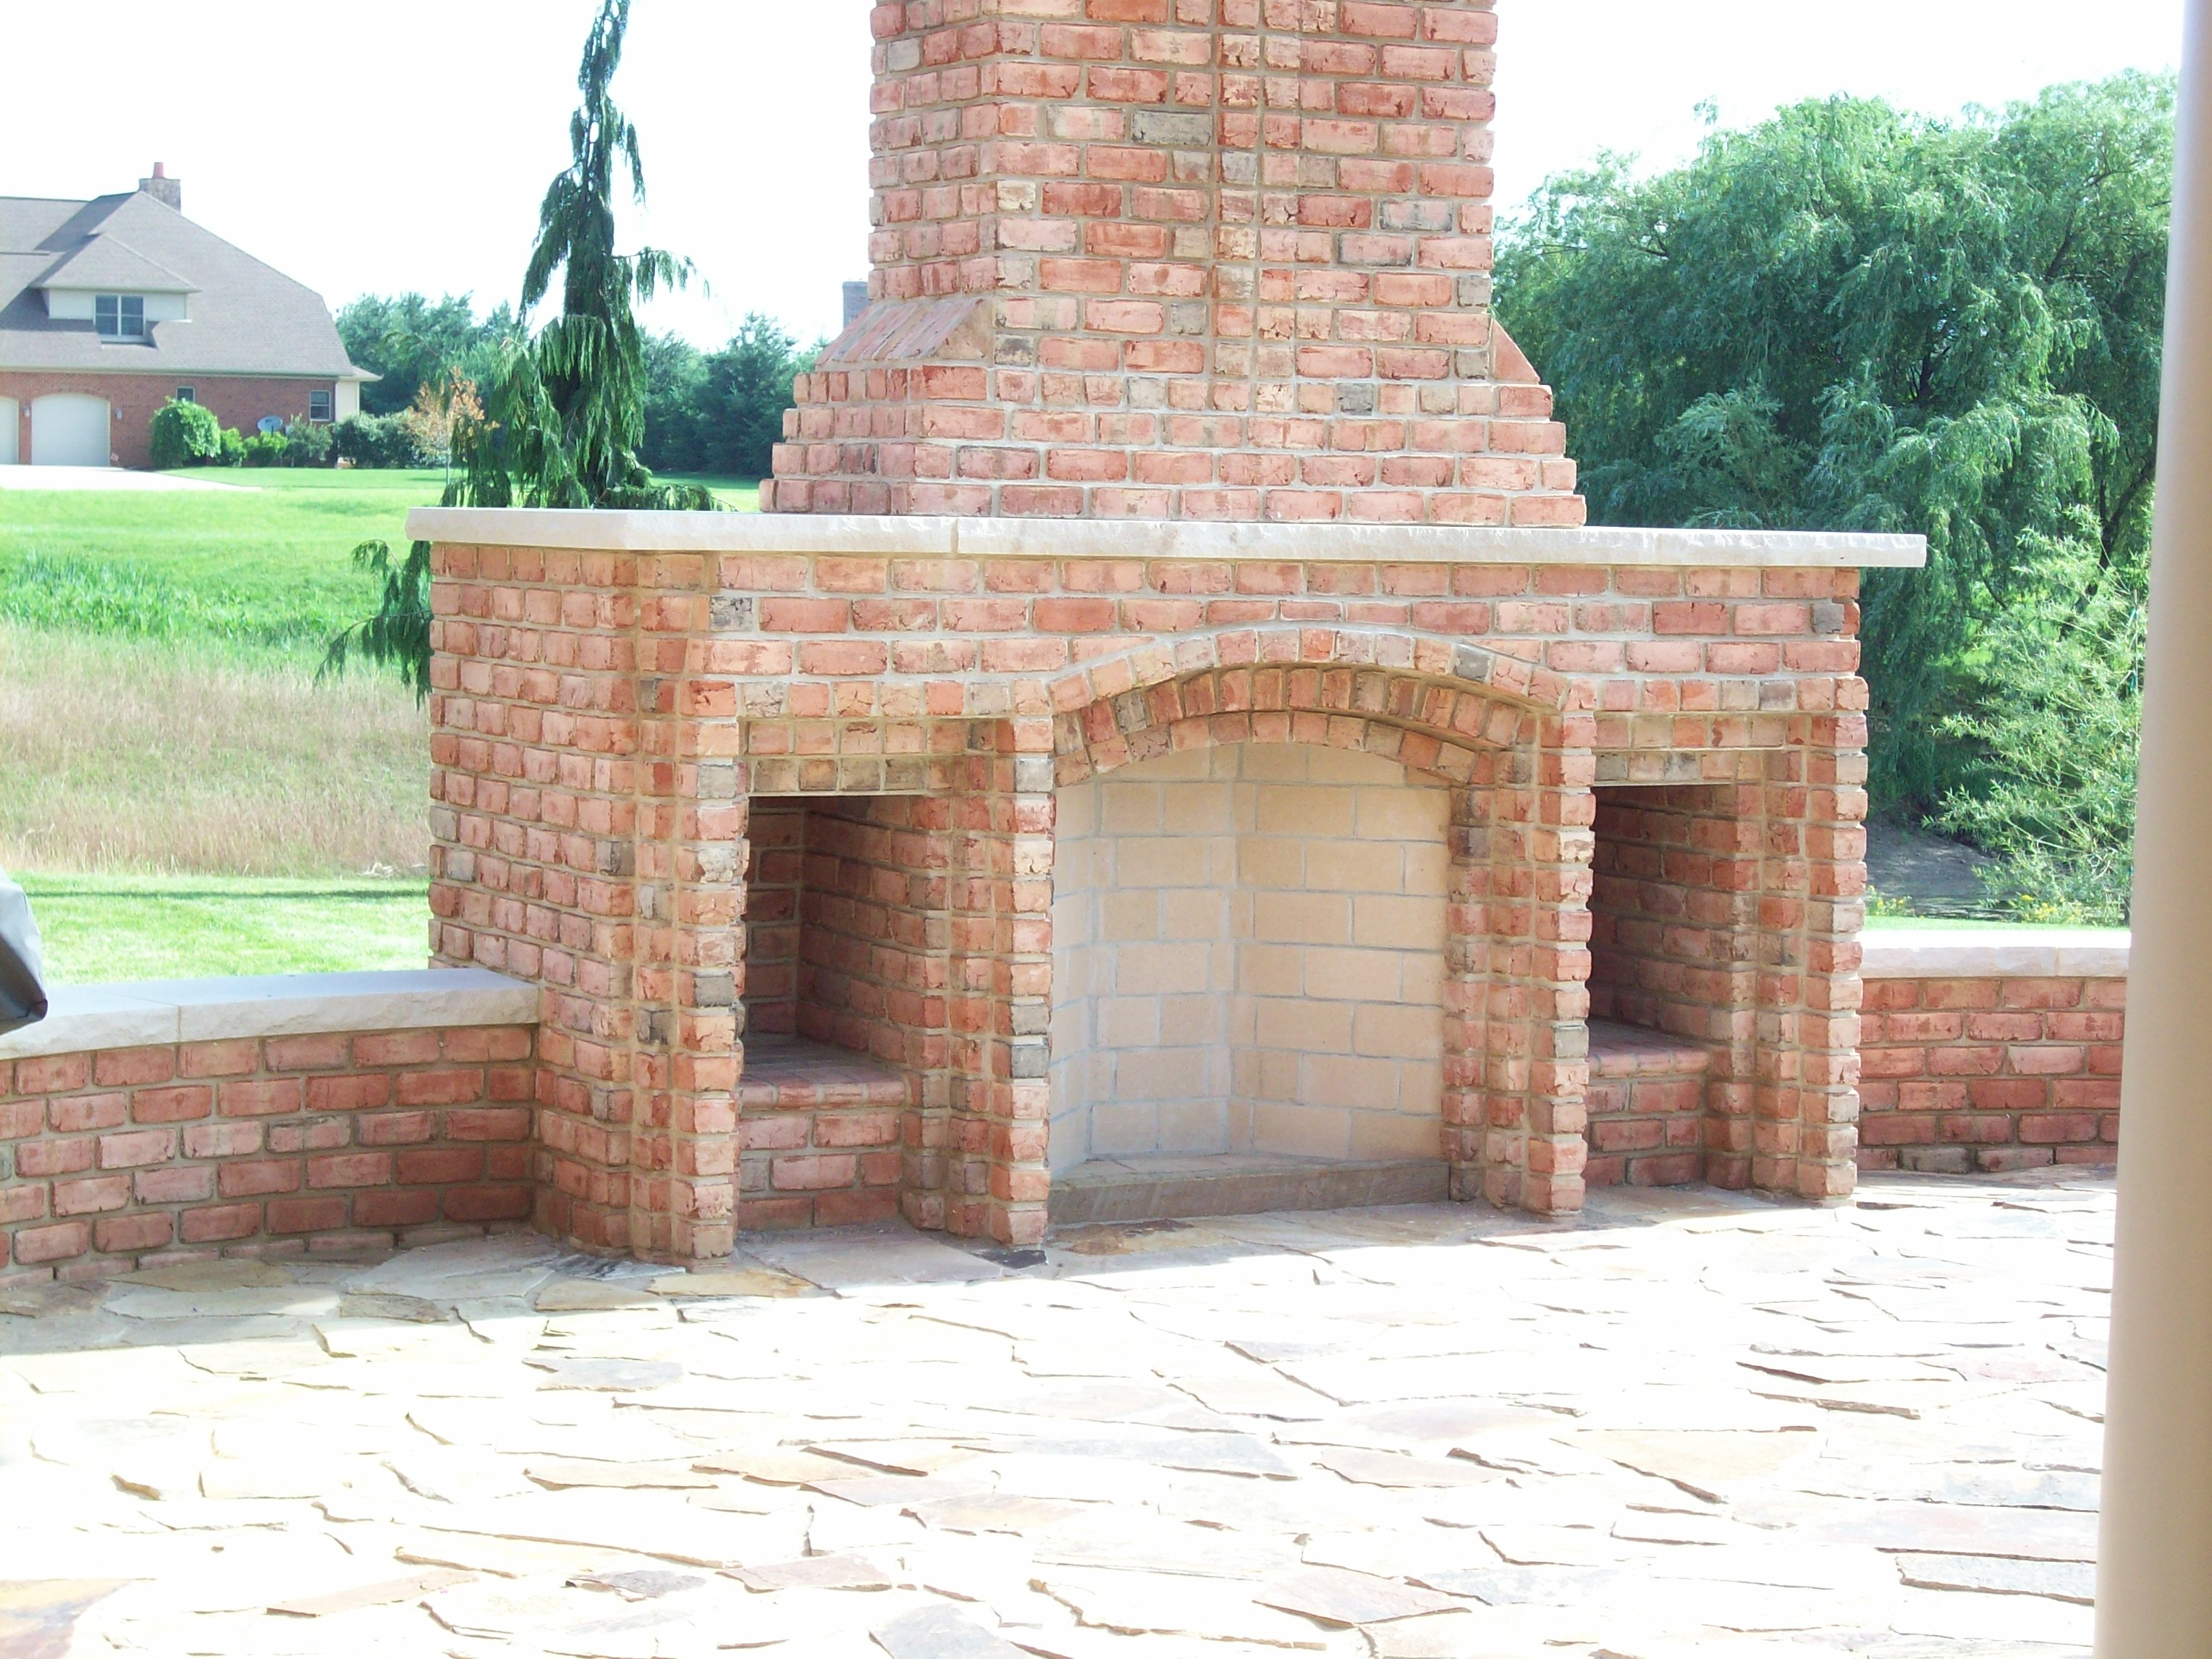 Outdoor brick rumford fireplace with chimney for back ideas